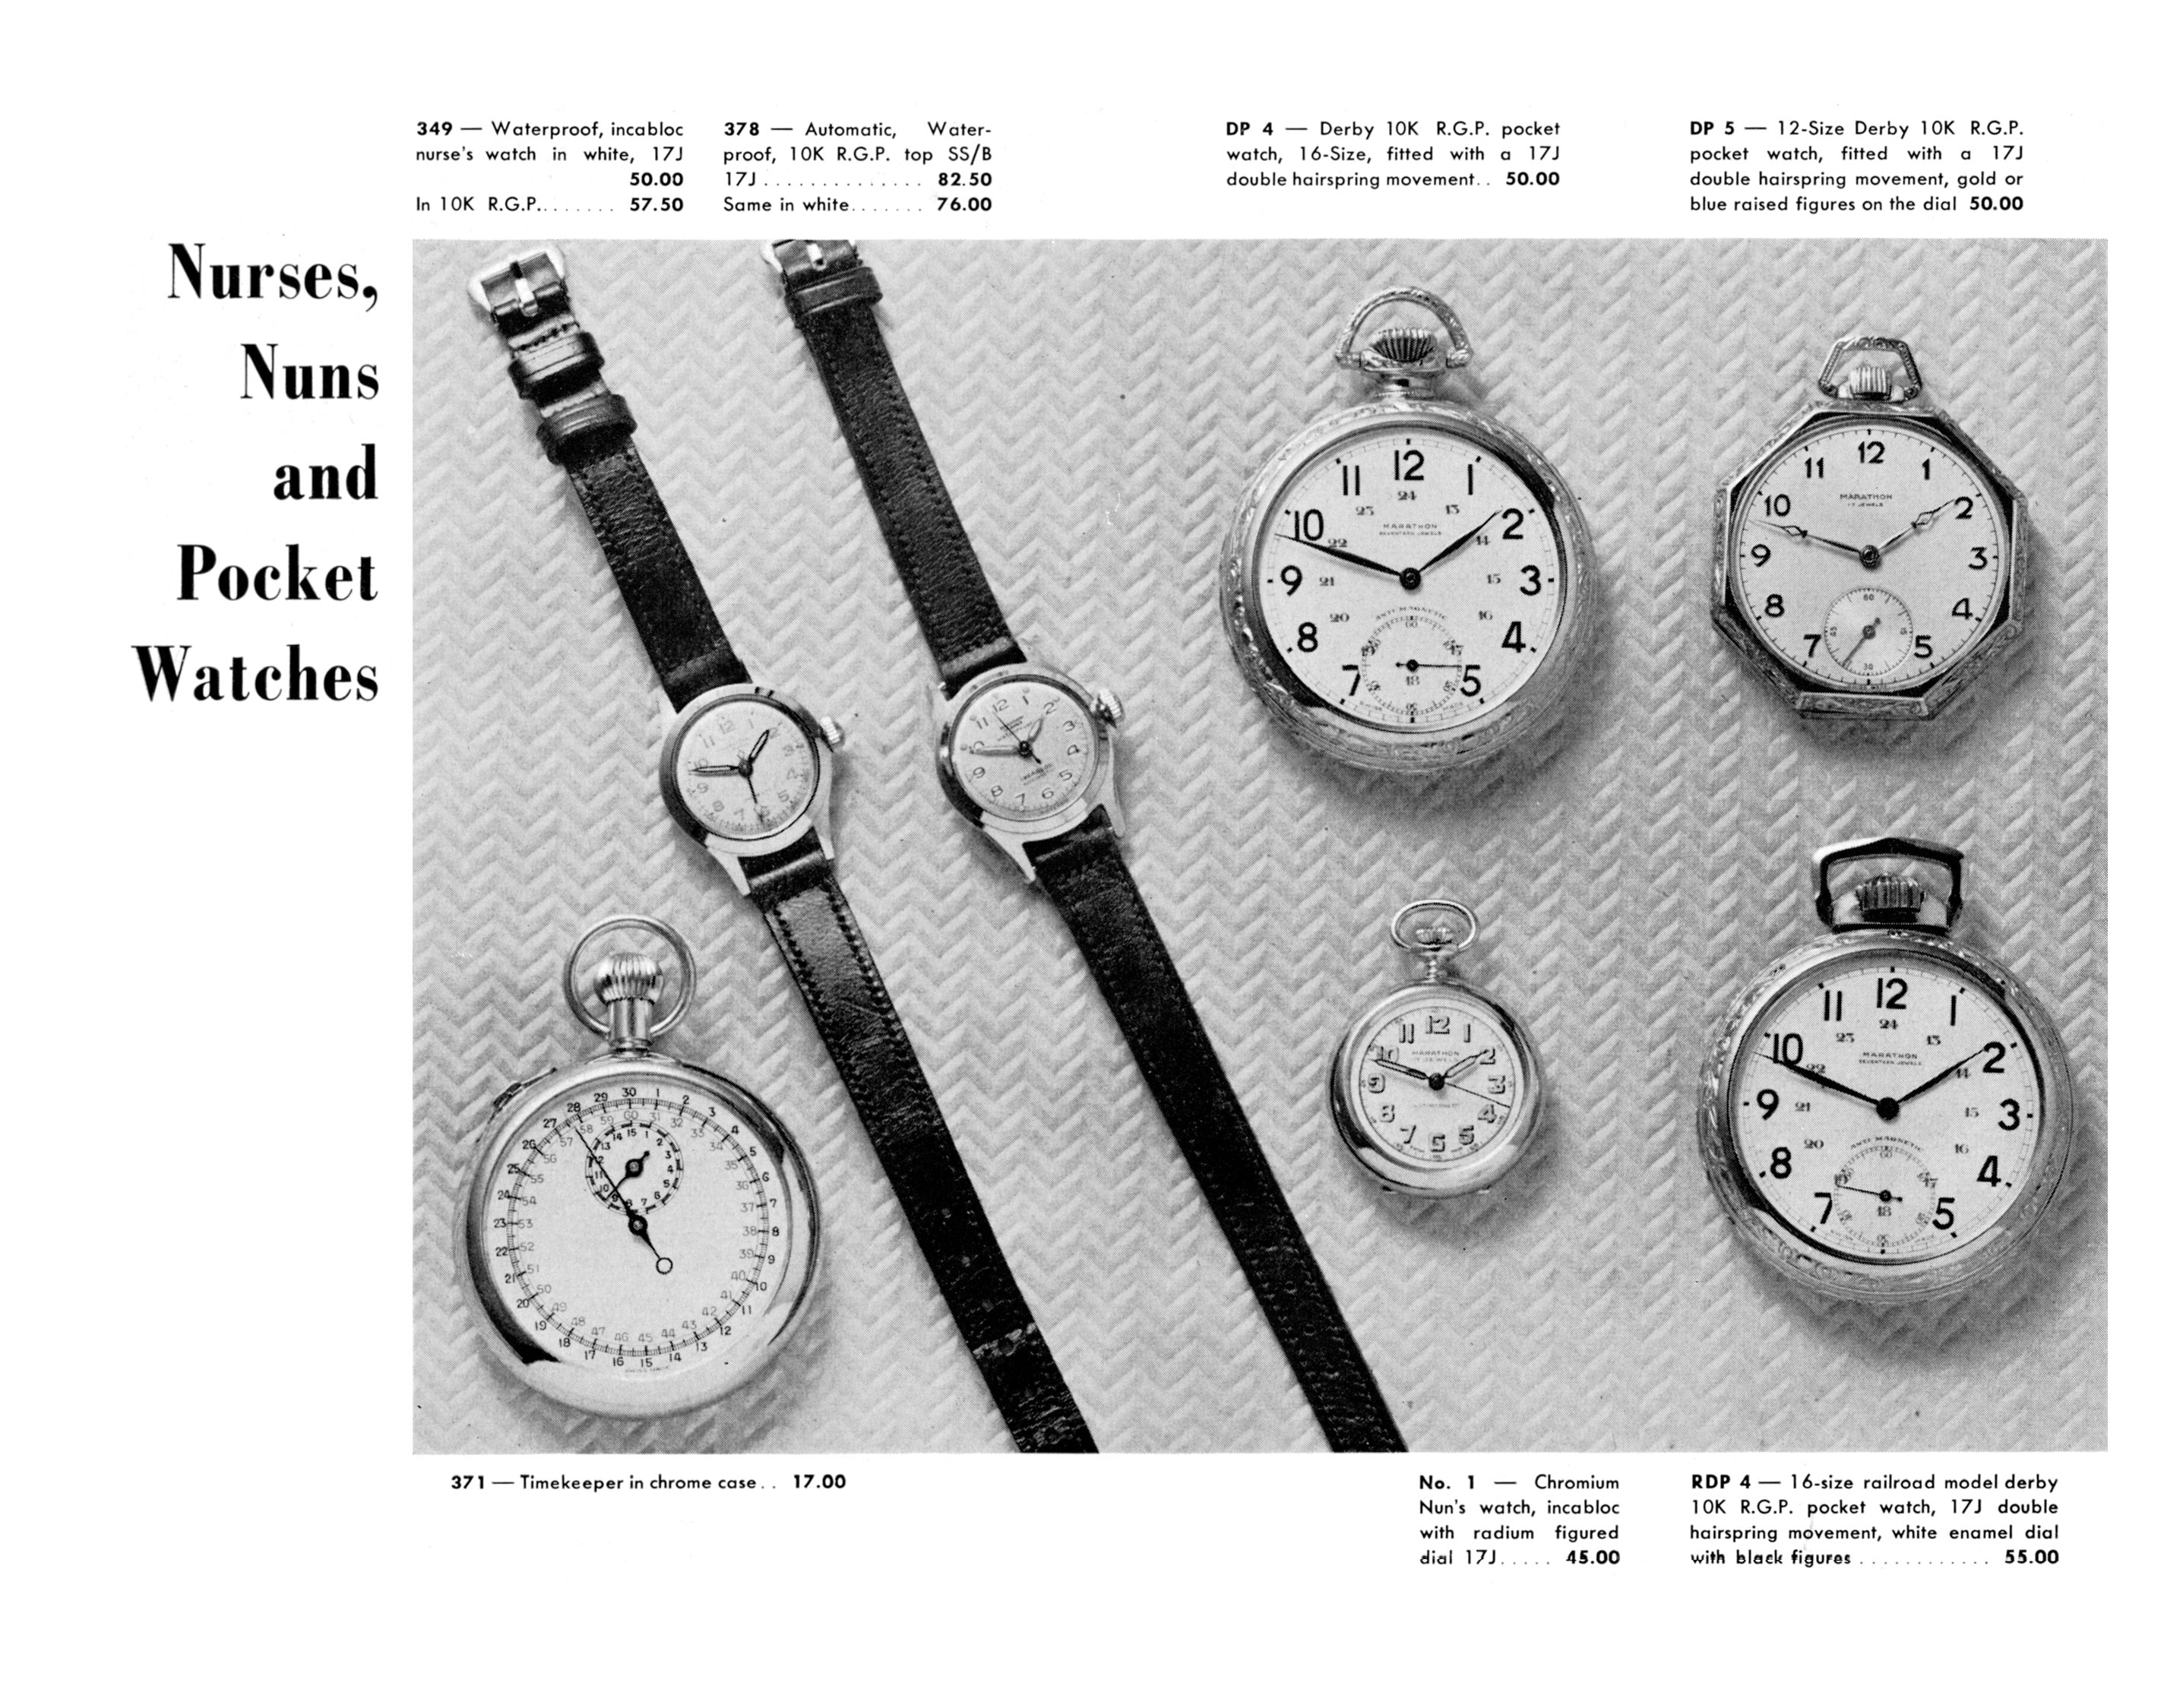 black and white ad: 'Nurses, Nuns and Pocket Watches' next to images of seven watches, both wrist and pocket